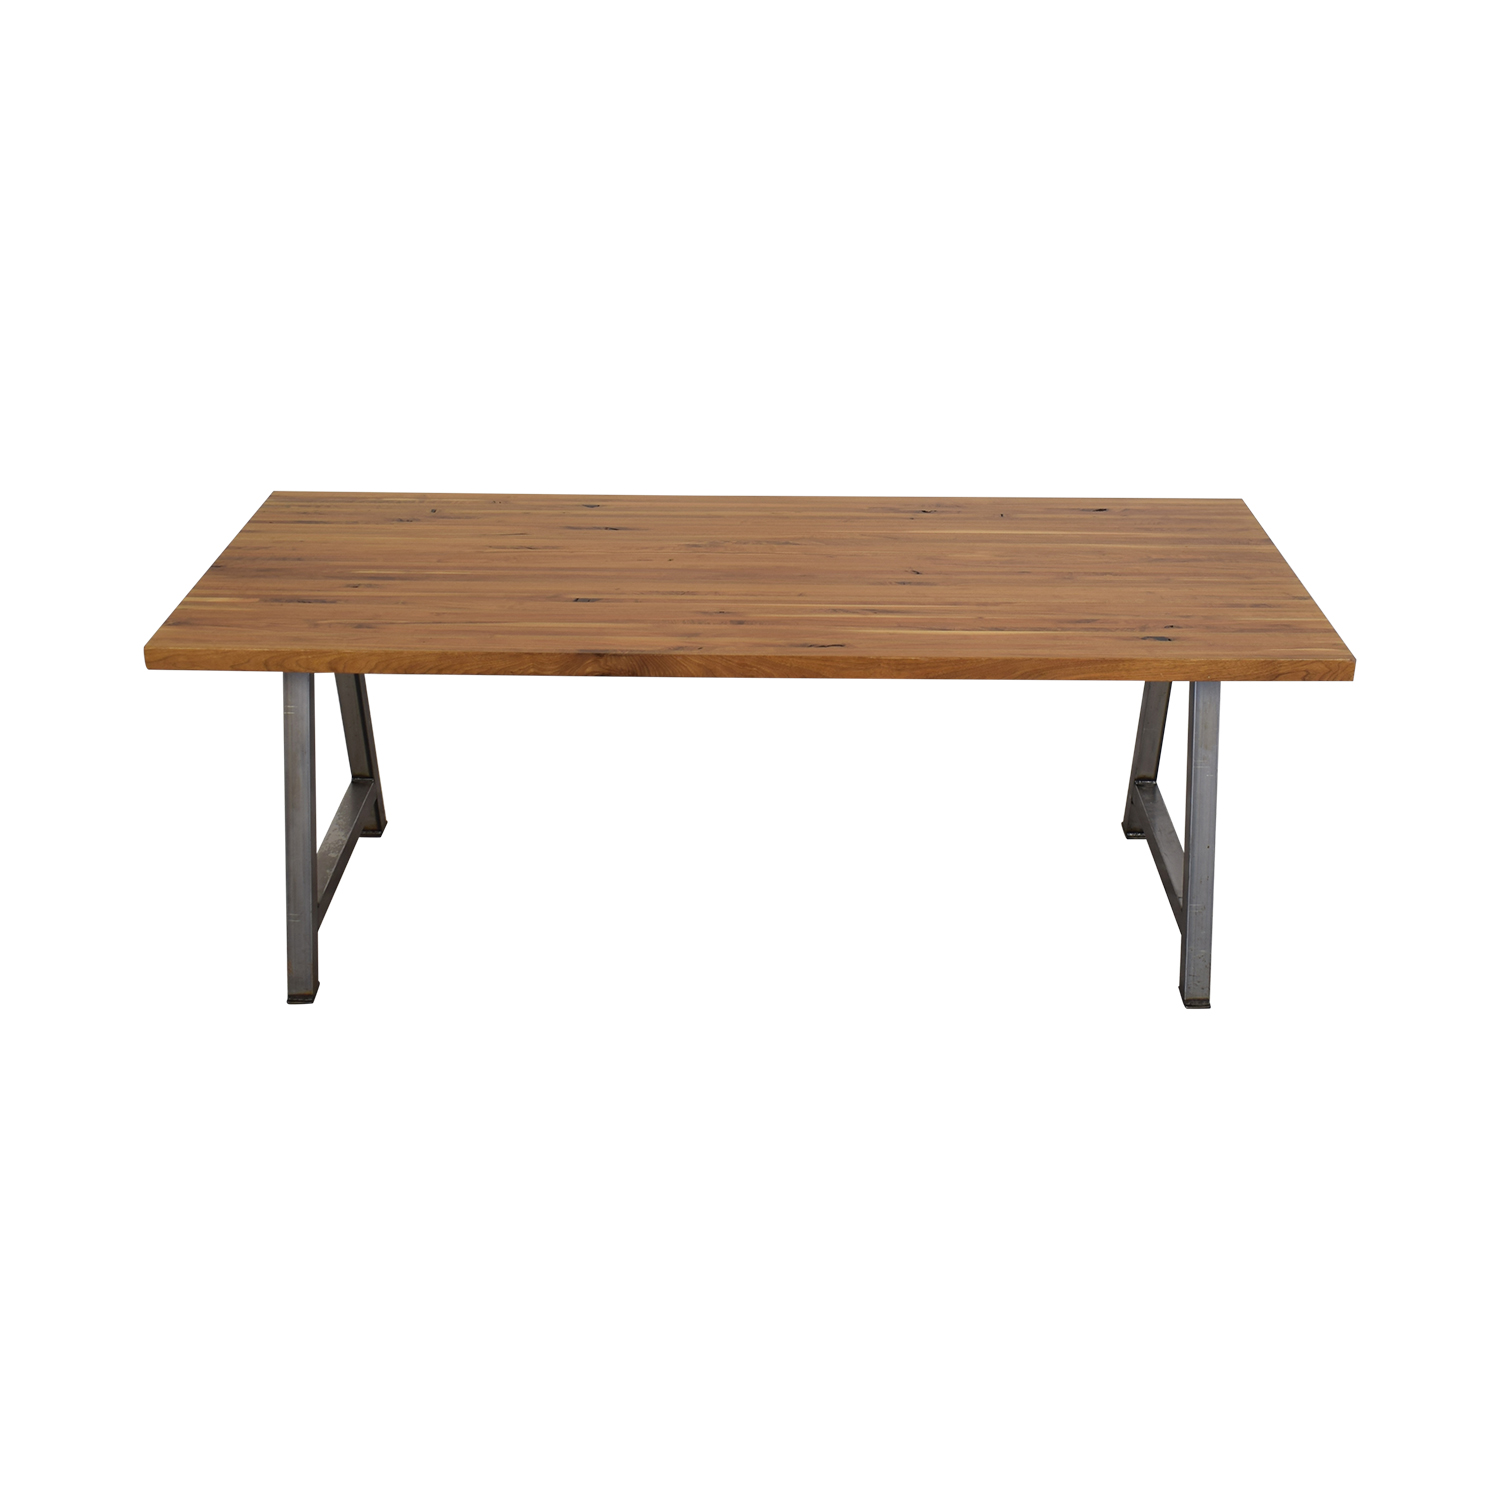 shop  Custom Butcher Block Table online